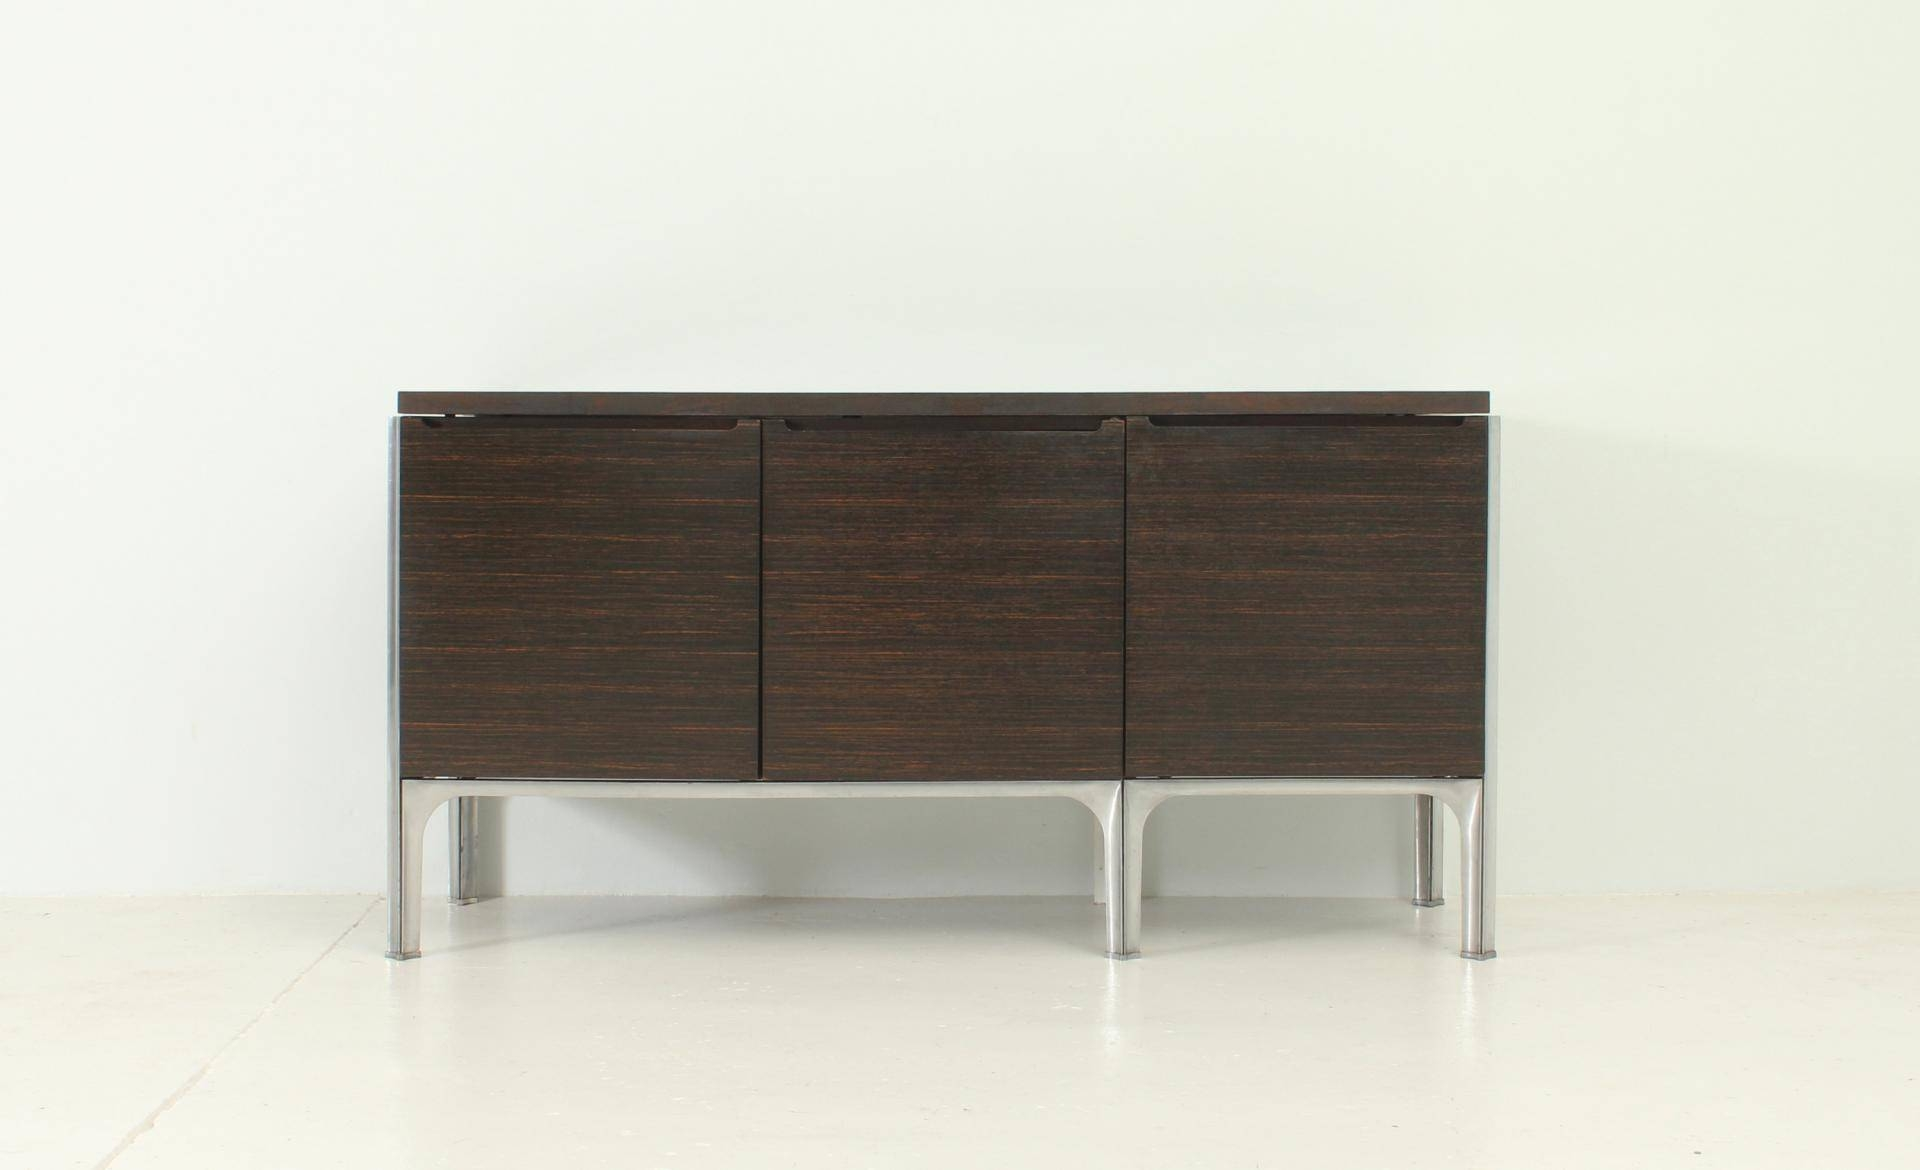 Macassar Ebony Wood Sideboardraymond Loewy For Df 2000 For Intended For Most Up To Date Affinity Sideboards (#7 of 15)